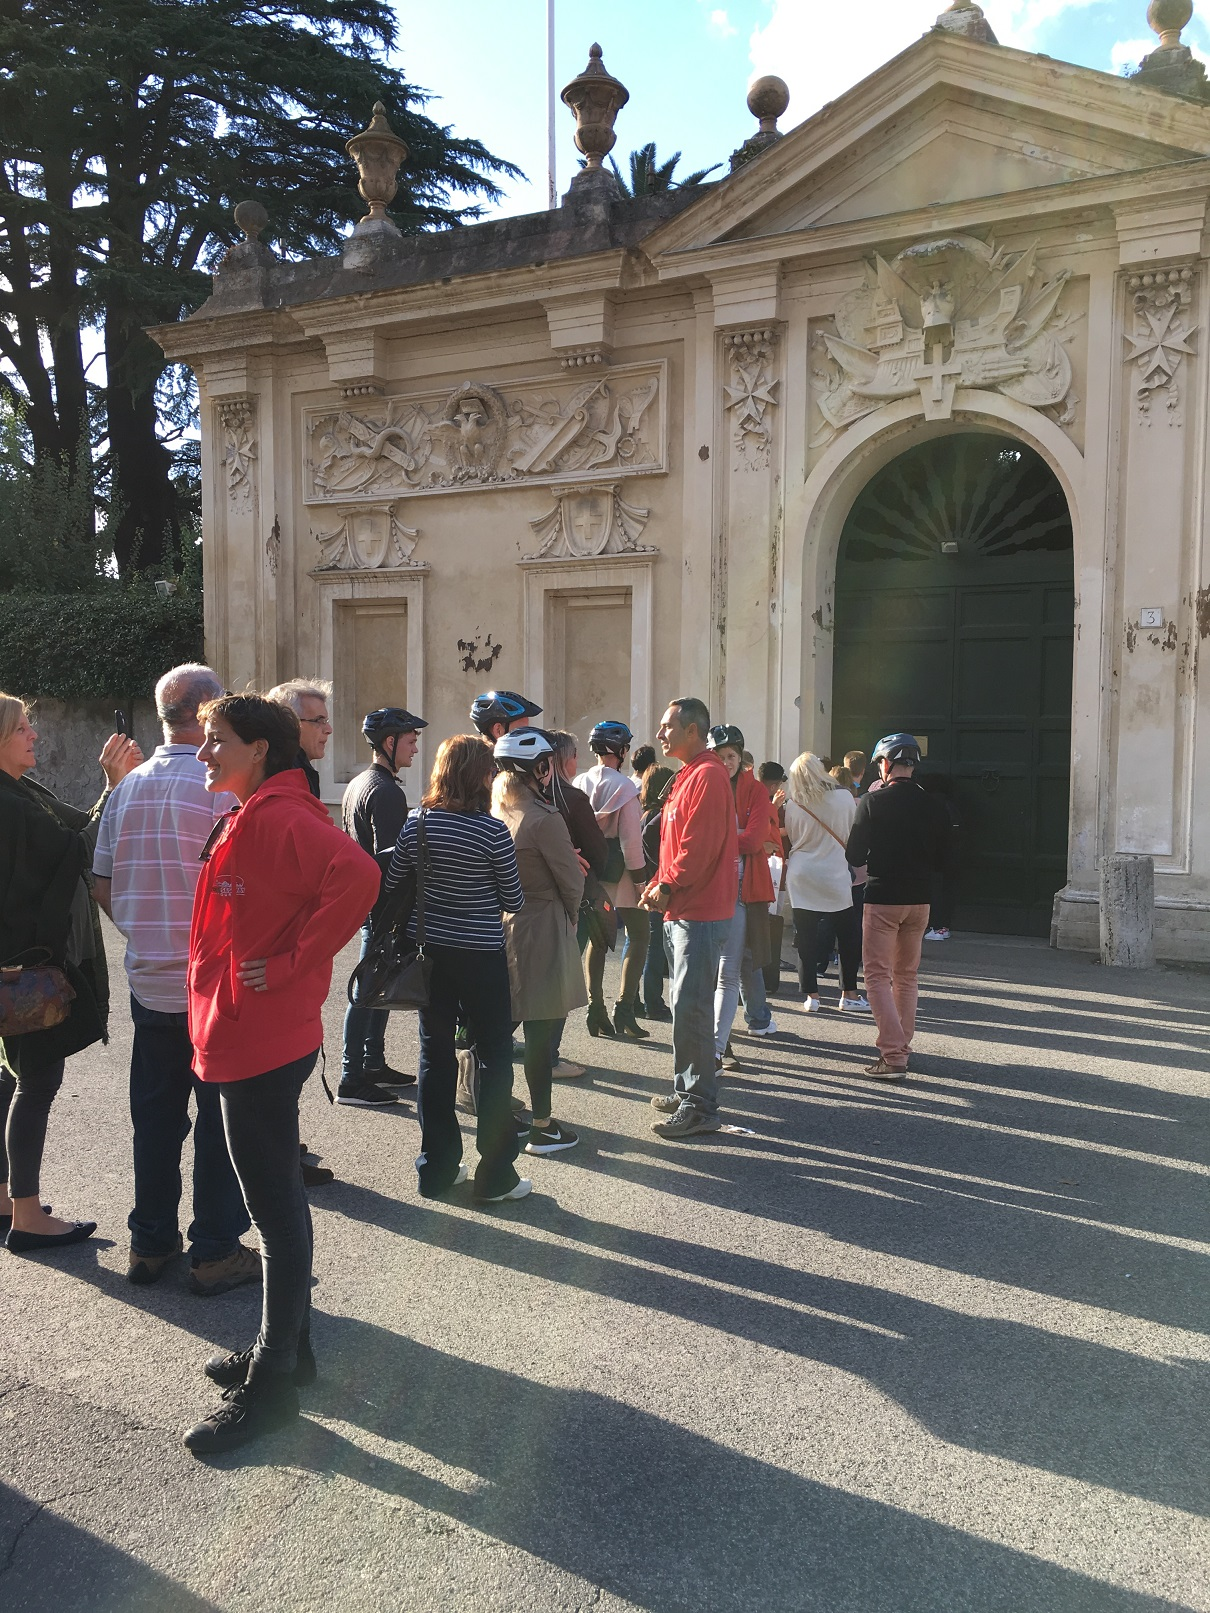 People lining up to look through the keyhole of the Knights of Malta's headquarters in Rome